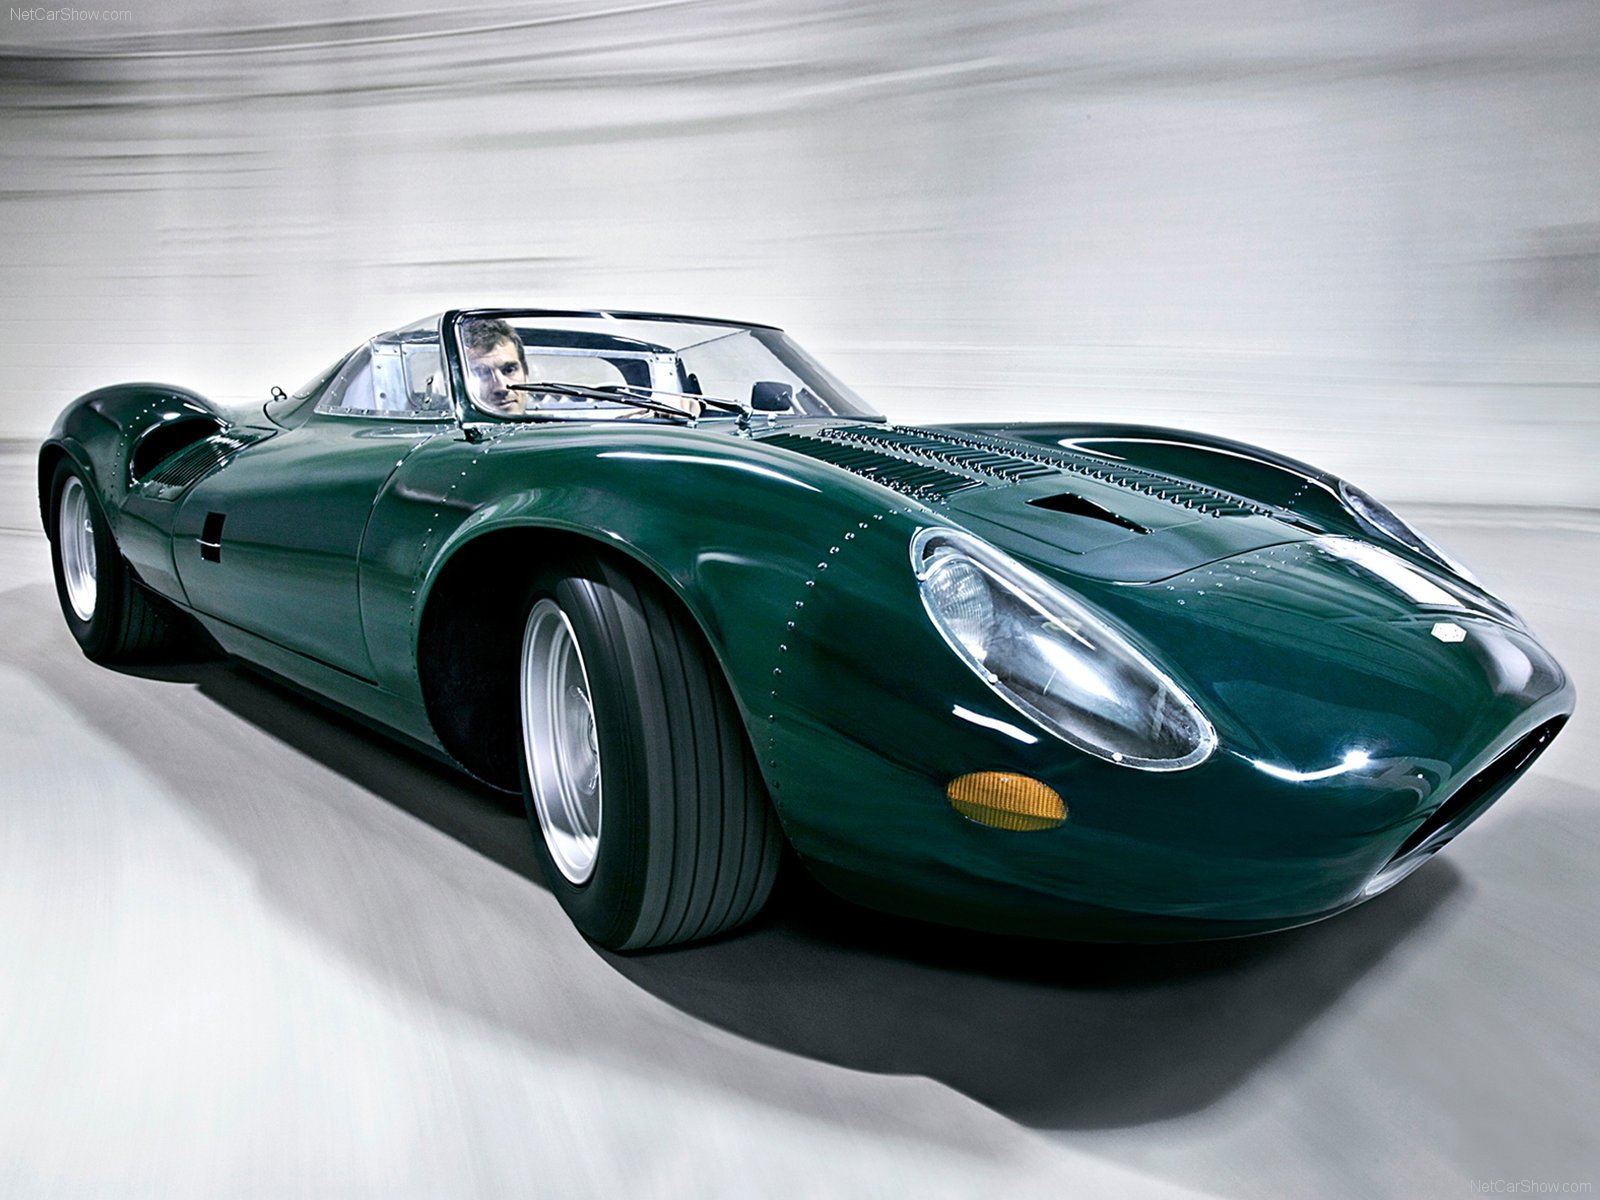 Captivating Jaguar XJ13